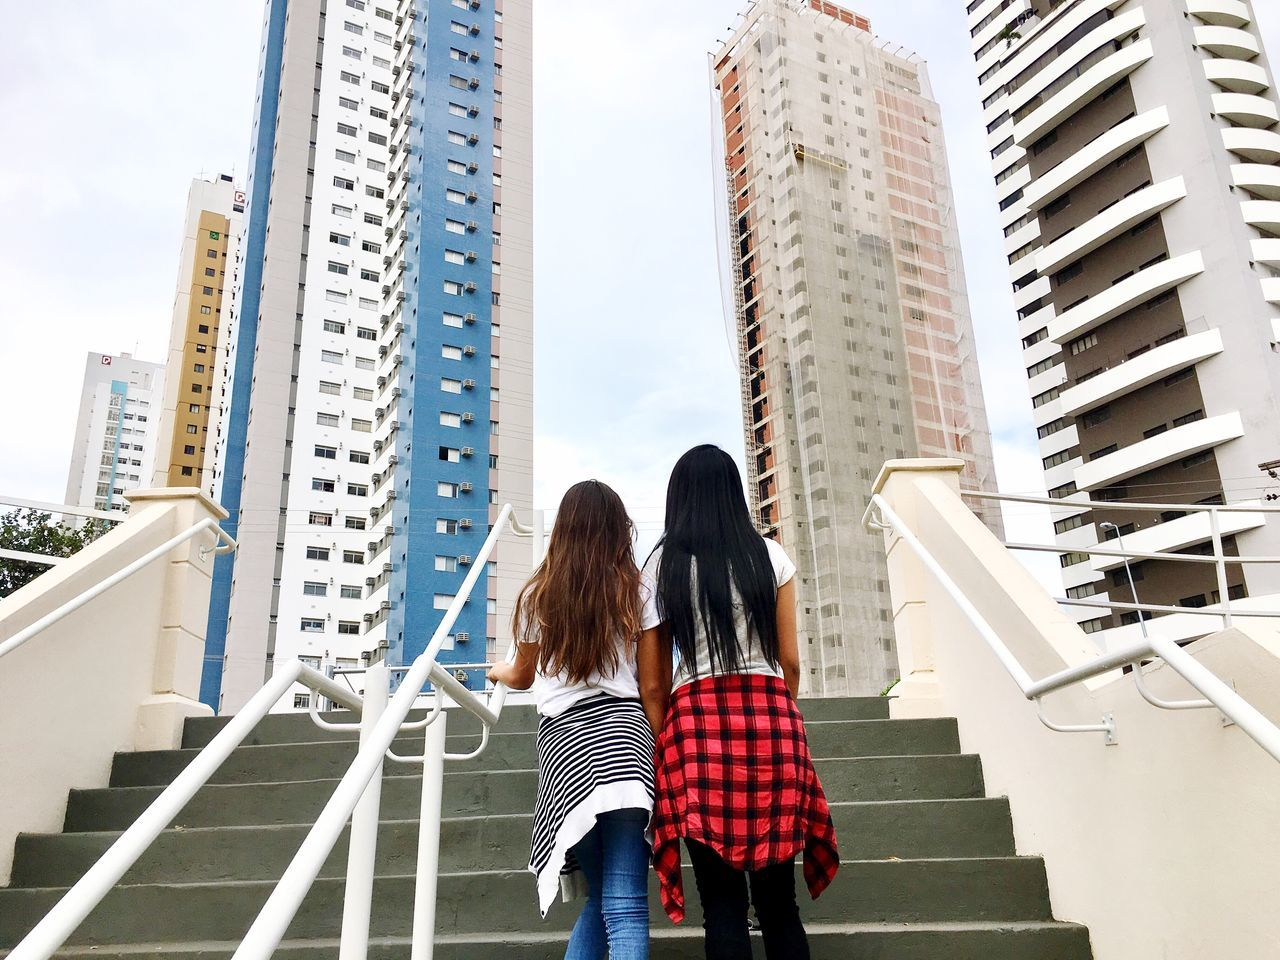 Two People Architecture Skyscraper Rear View Building Exterior Built Structure Togetherness City Women Real People Day Walking Steps And Staircases Modern Staircase City Life Casual Clothing Low Angle View Young Women Lifestyles Long Goodbye